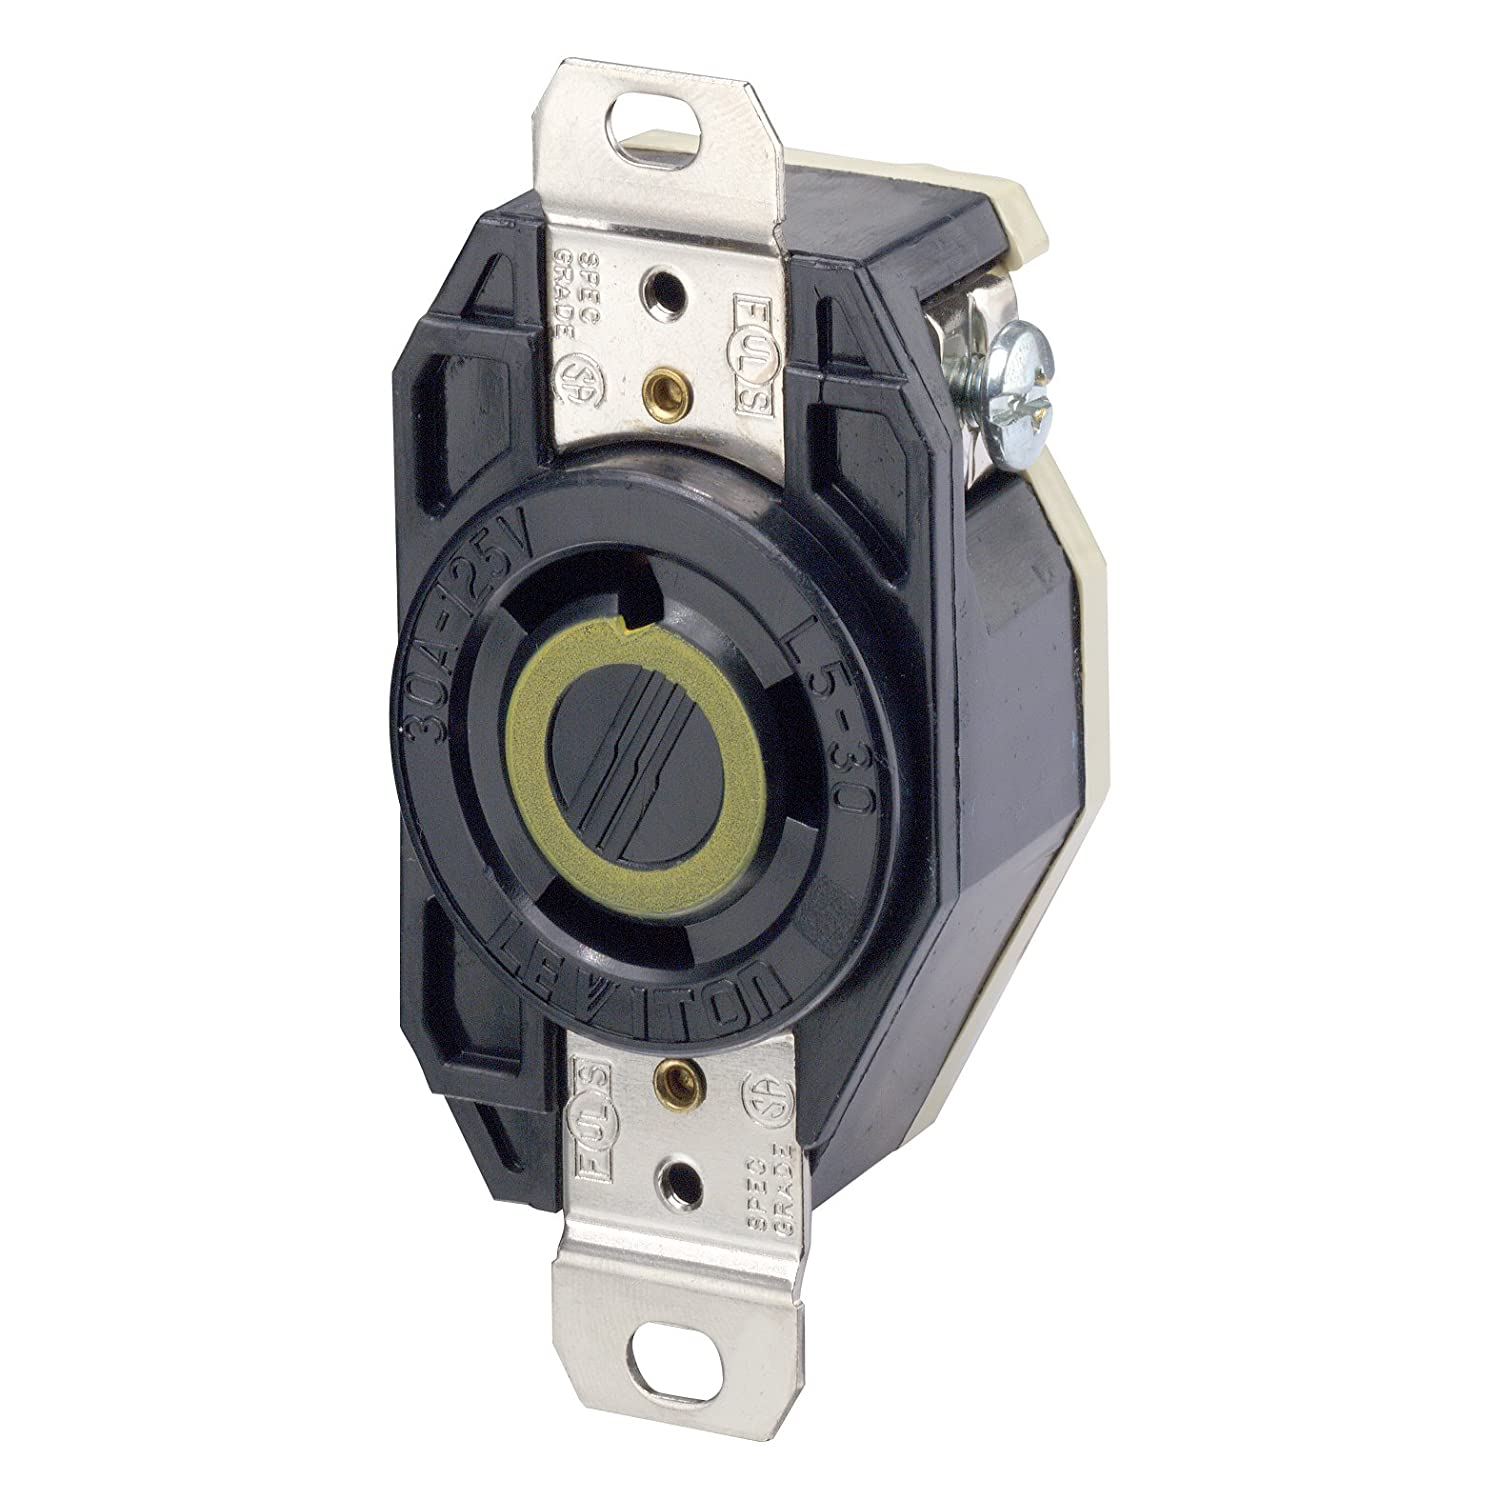 717vHr%2BMnaL._SL1500_ leviton 2610 30 amp, 125 volt, flush mounting locking receptacle leviton 30a flush mount power outlet wiring diagram at bayanpartner.co